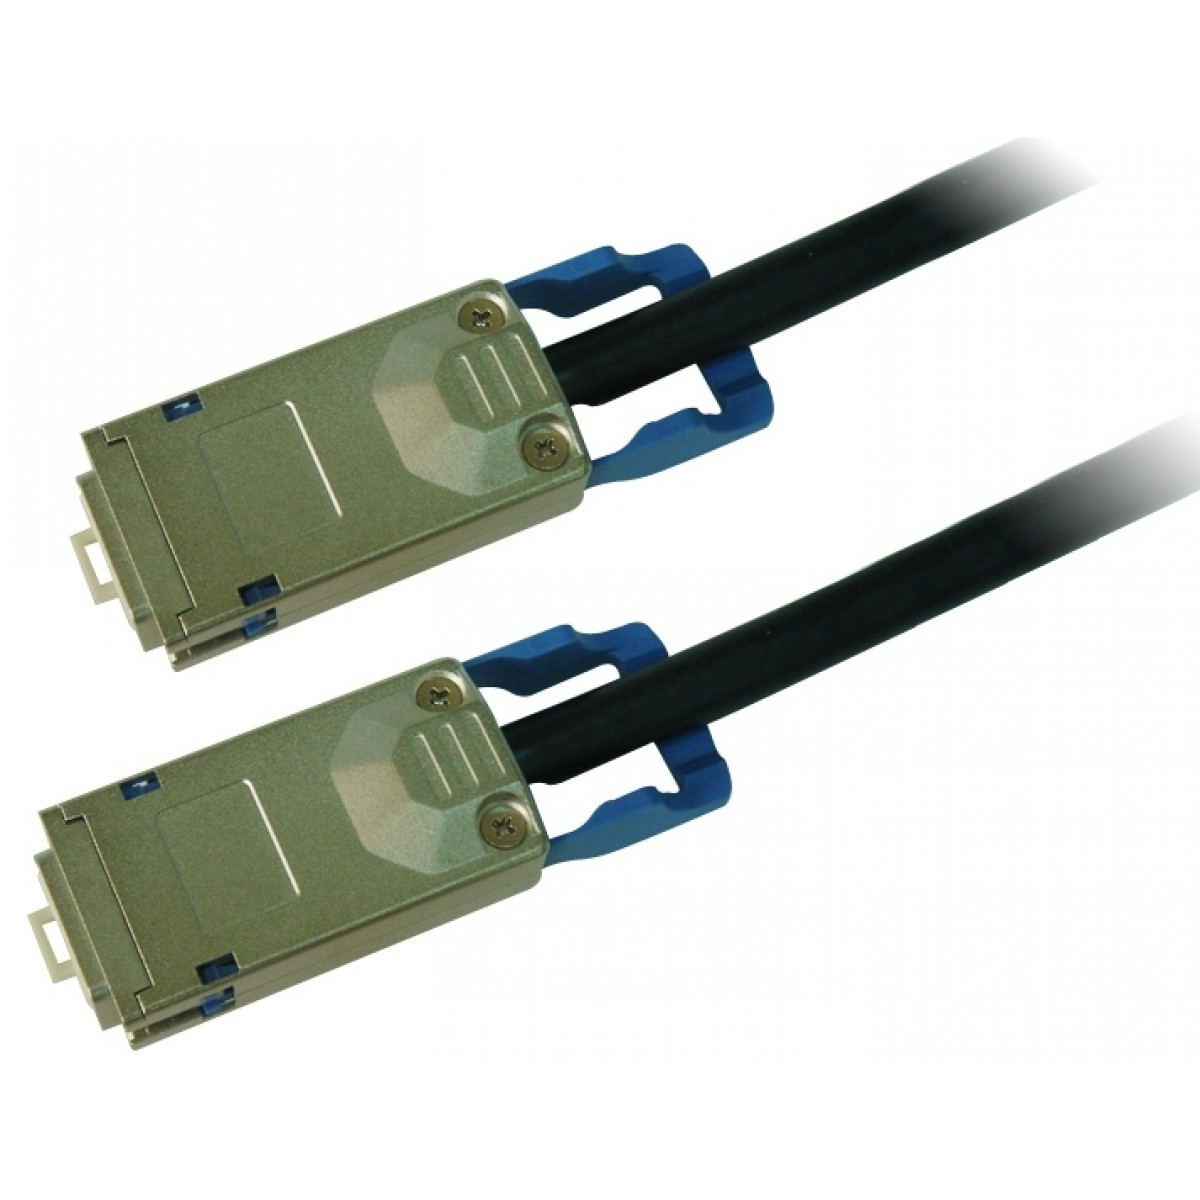 Cisco Stackwise Plus Stacking Cable 3 M For Catalyst 2960 Necessary Should Be Connected To Series Switch 2960g